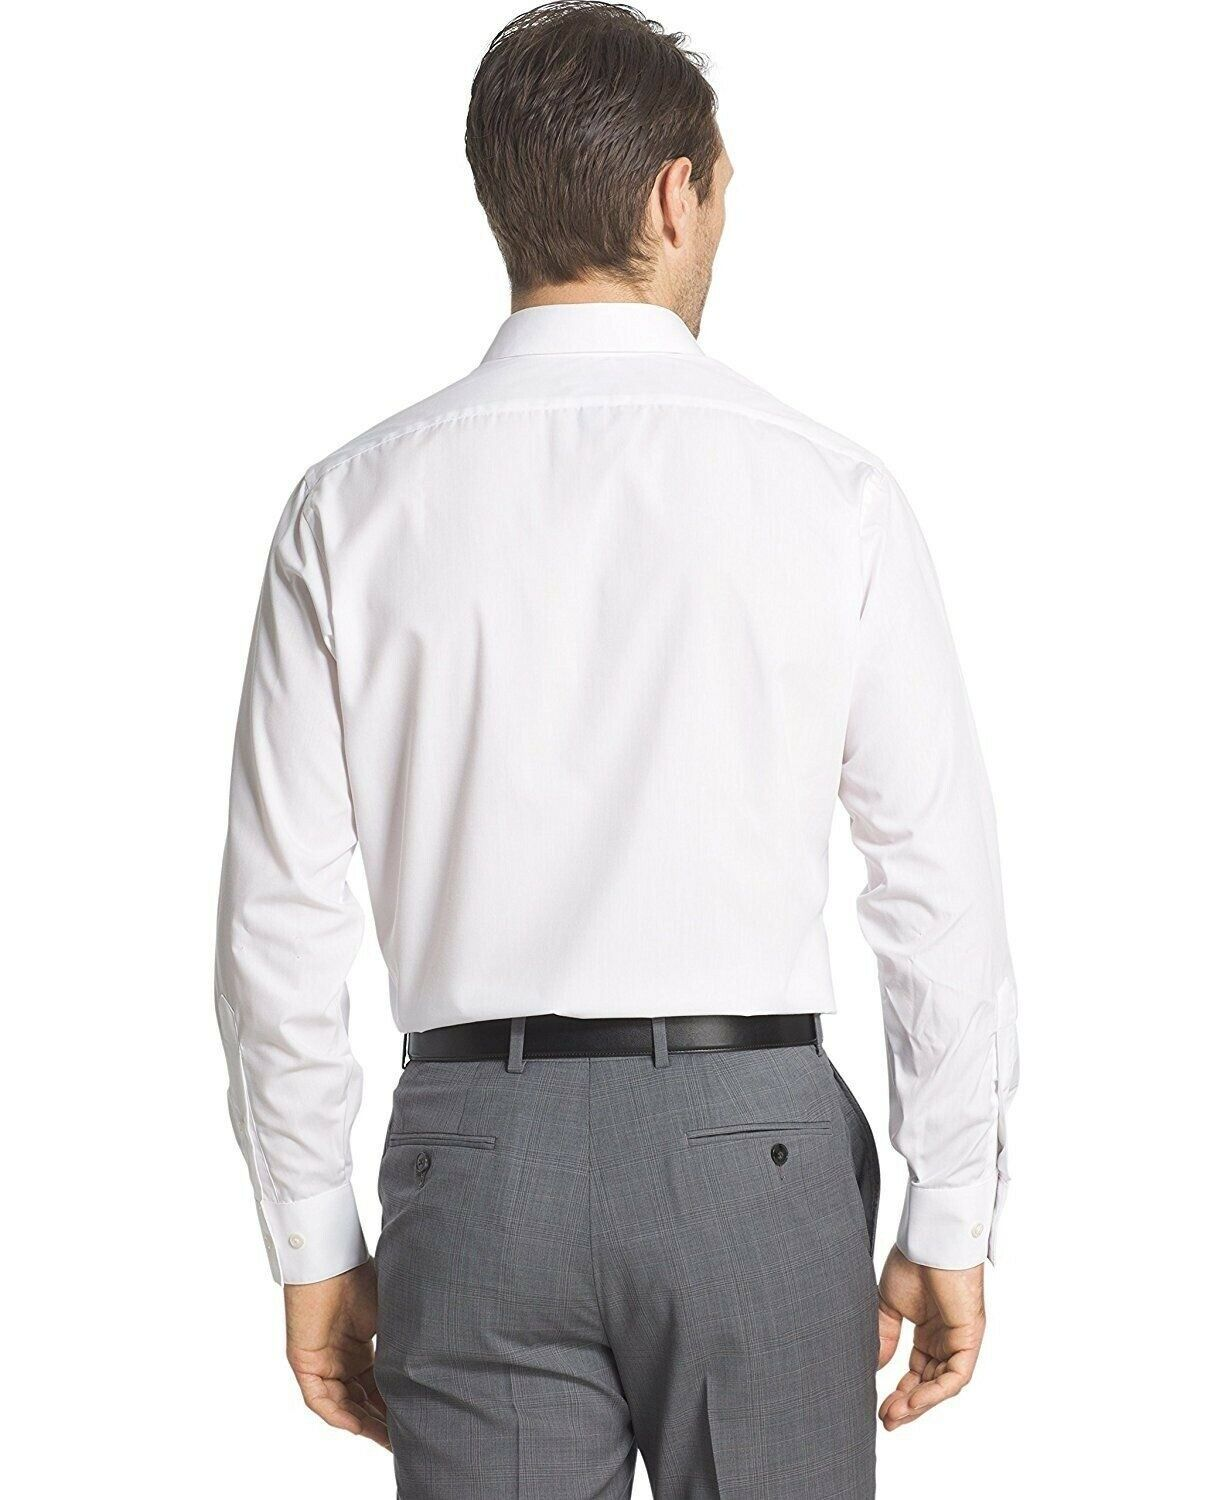 BERLIONI-ITALY-MEN-039-S-PRIME-FRENCH-CONVERTIBLE-CUFF-SOLID-DRESS-SHIRT-WHITE thumbnail 16